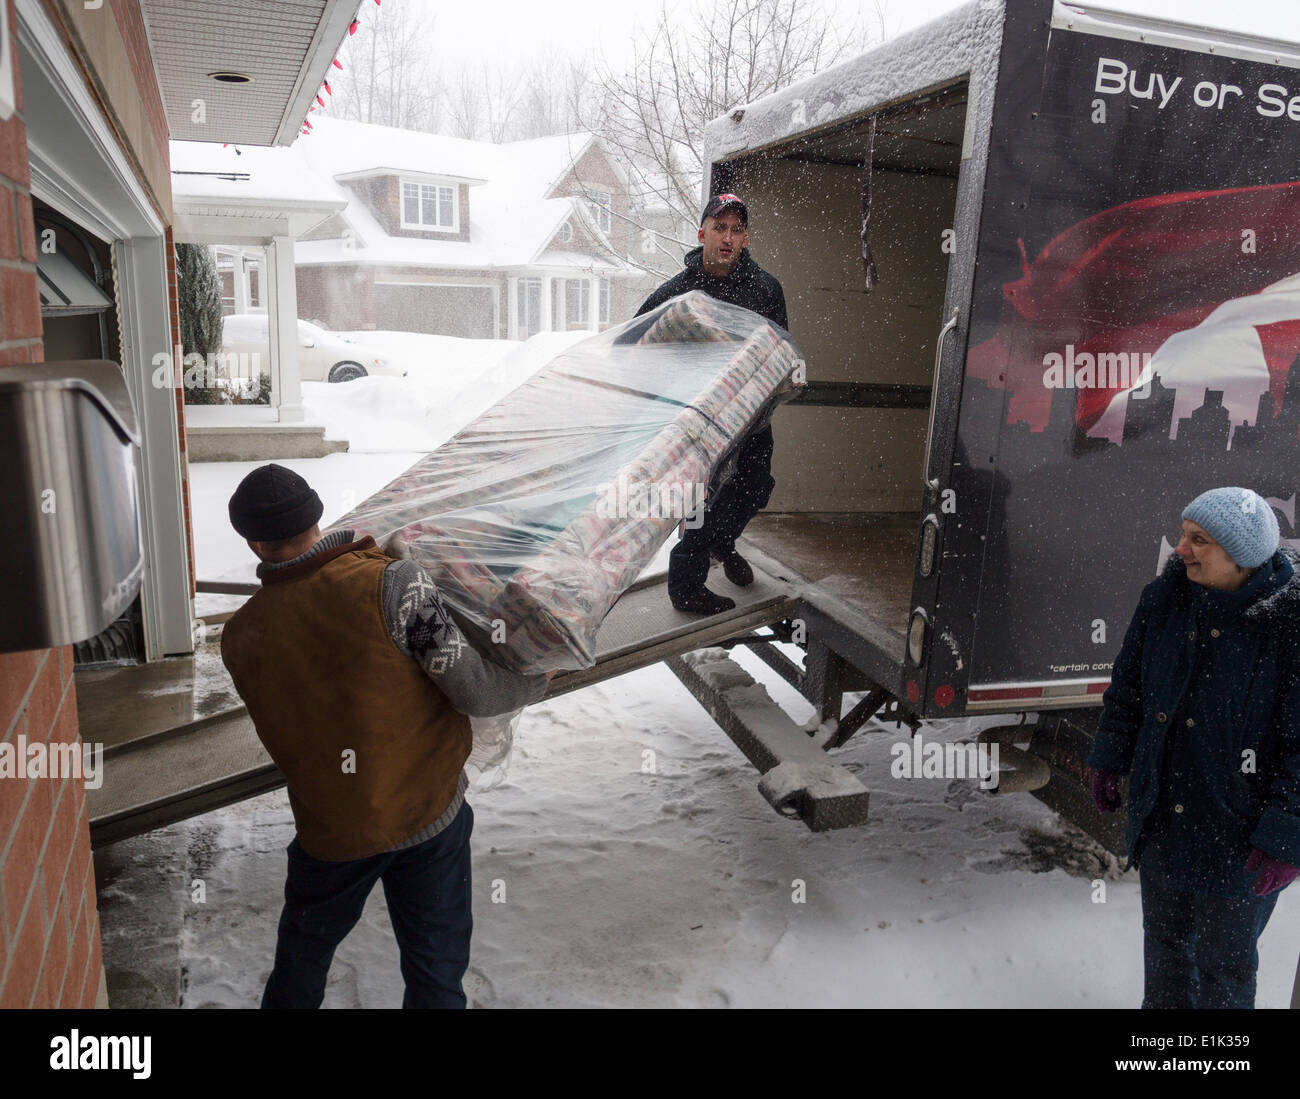 Moving in a Snow Storm. Two men lift a plastic wrapped couch into a moving van while the snow pours down. A woman looks on. - Stock Image